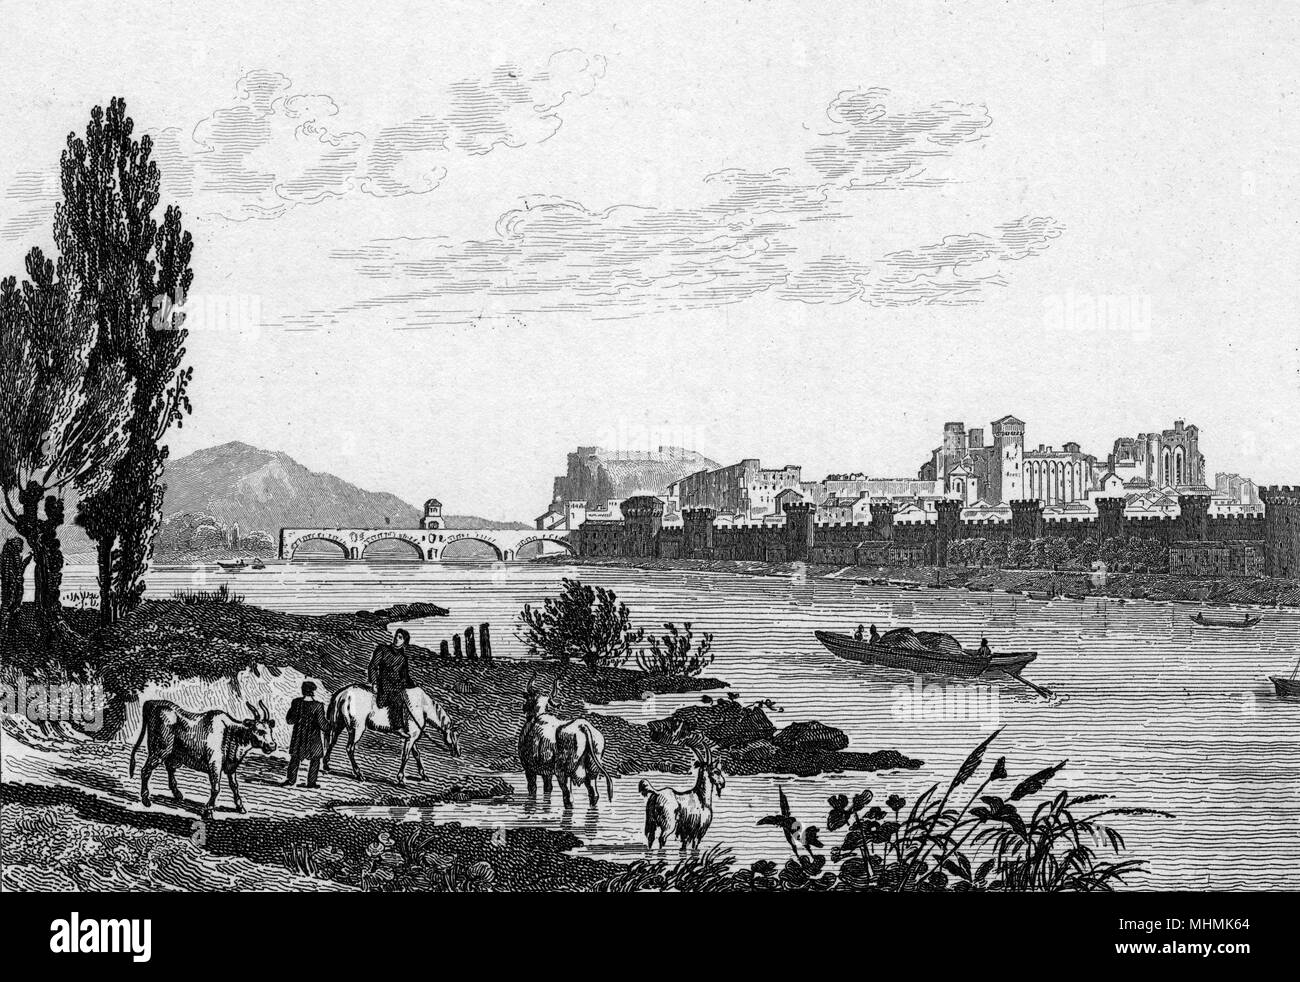 Avignon: the partially completed bridge in the background, with cattle in the foreground      Date: 1835 - Stock Image